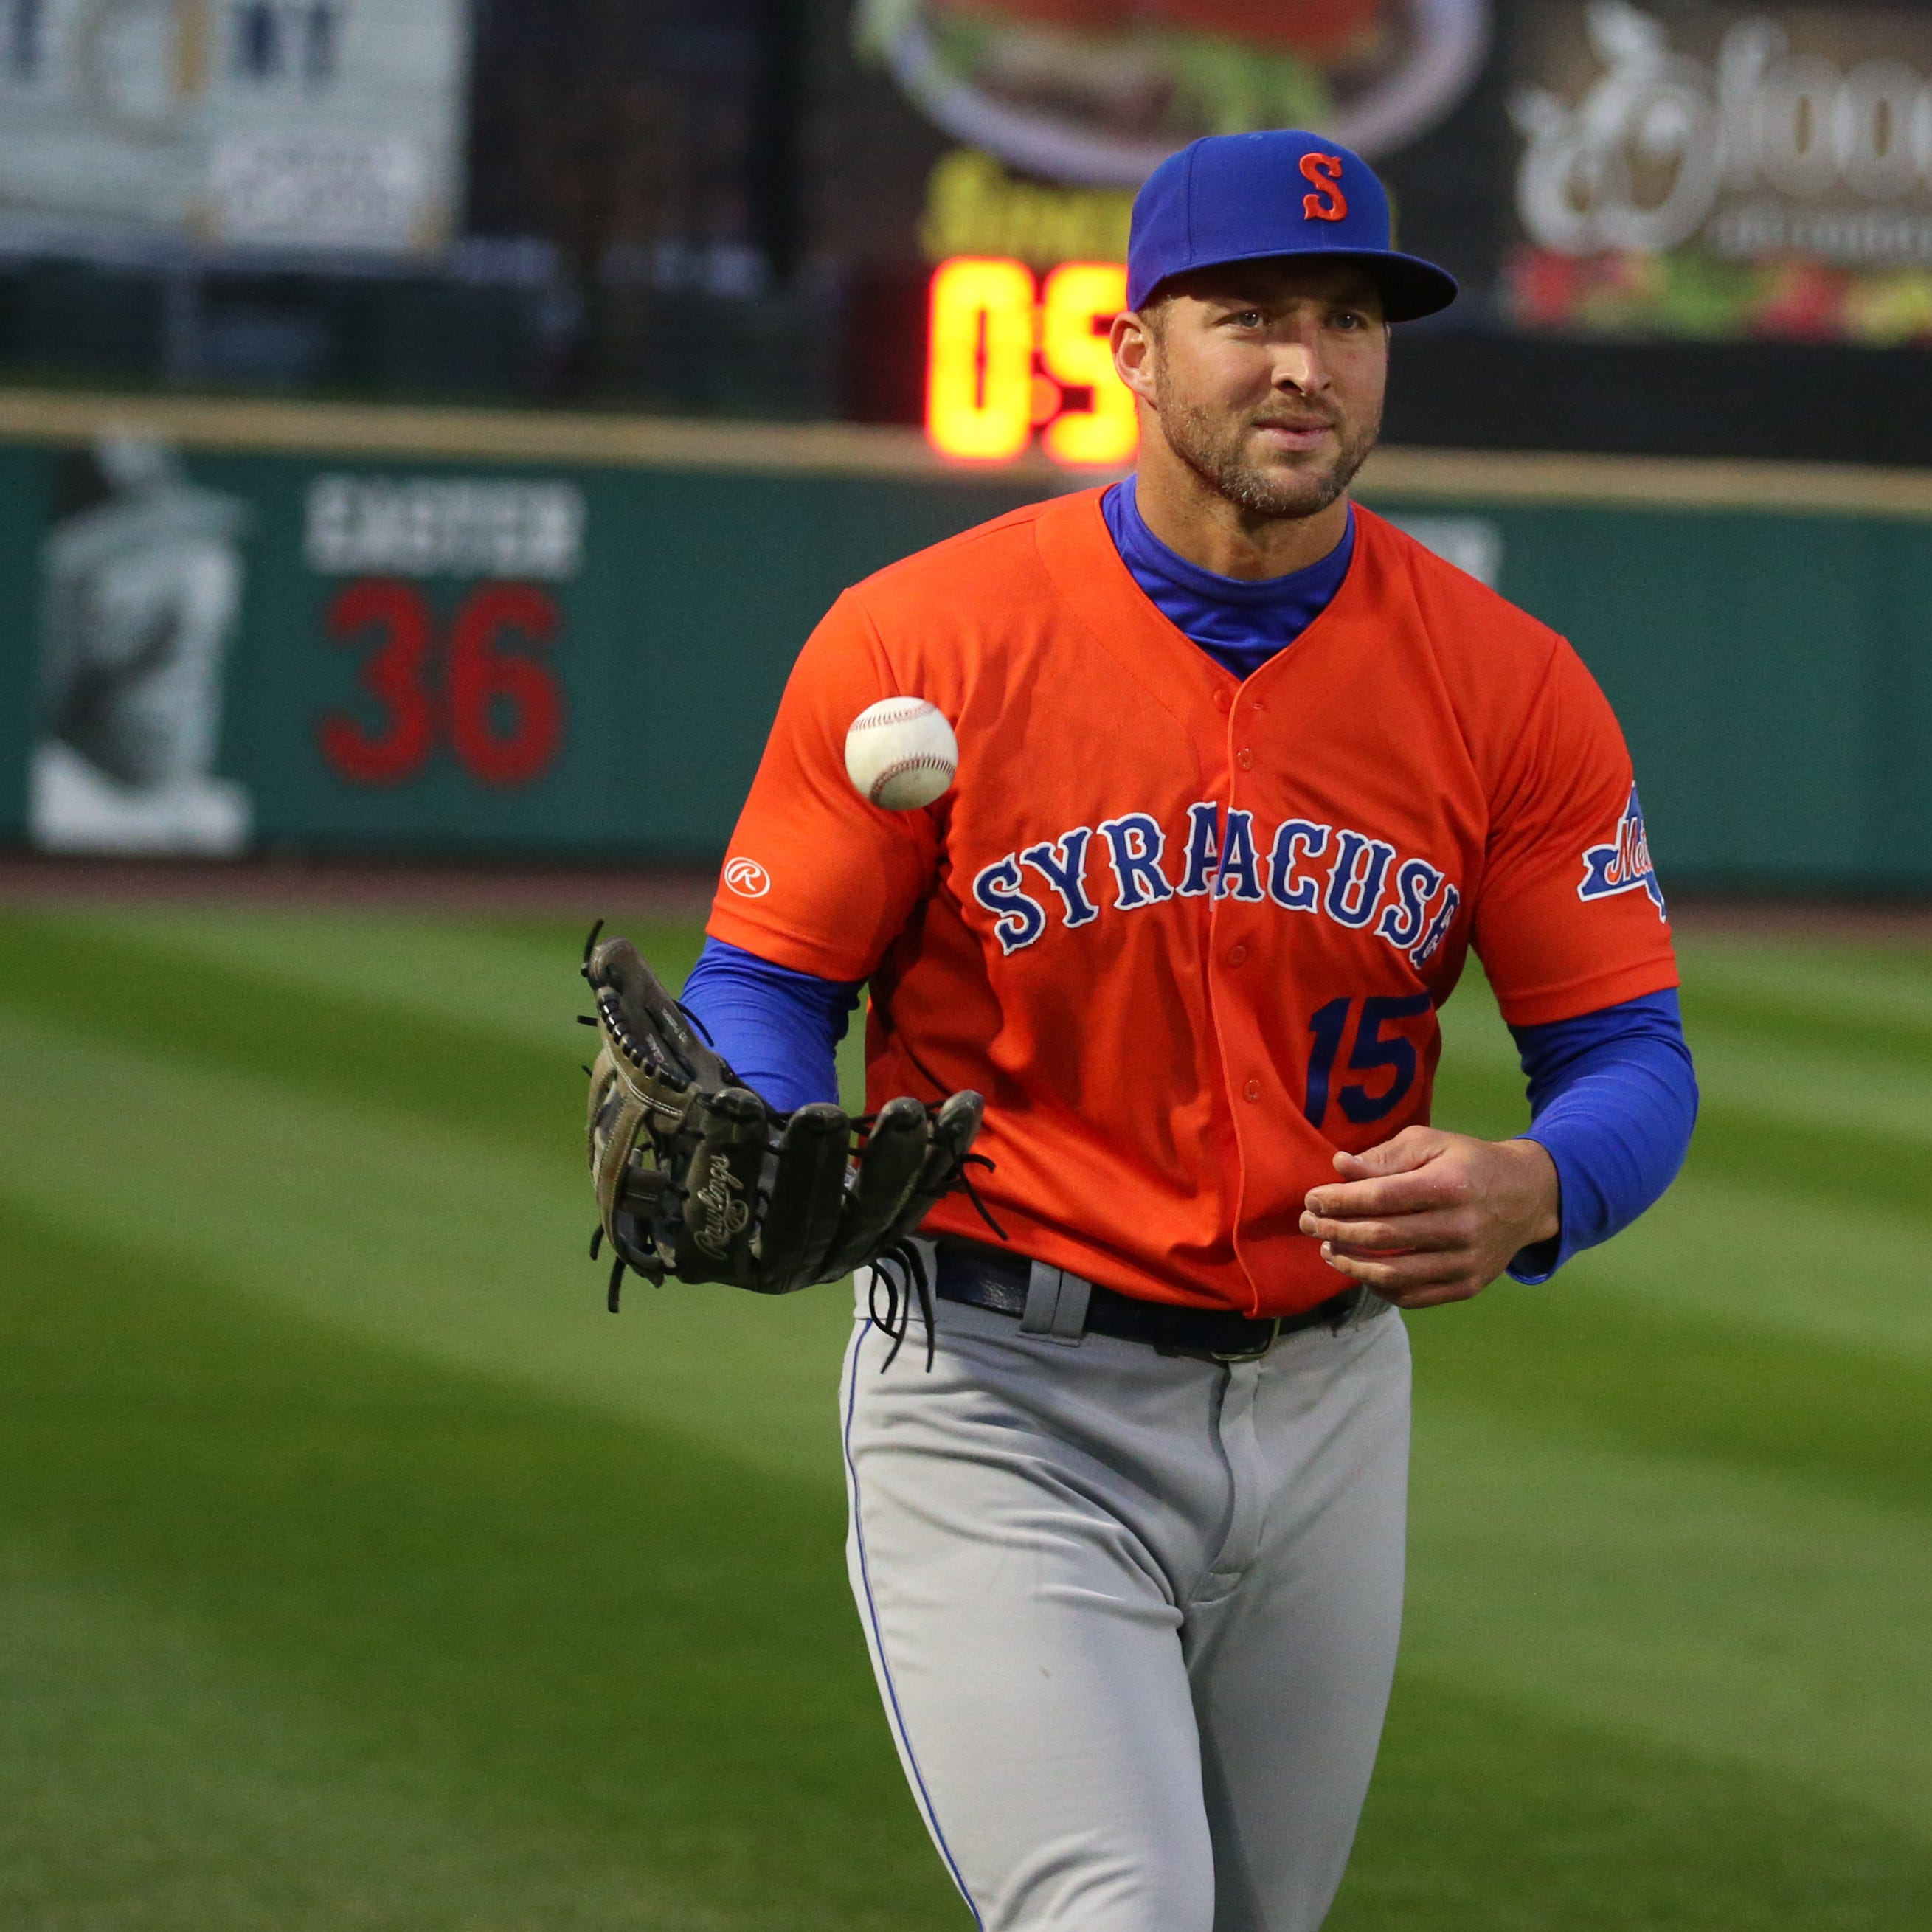 Tim Tebow sits in first game, but singles in second as Red Wings split doubleheader